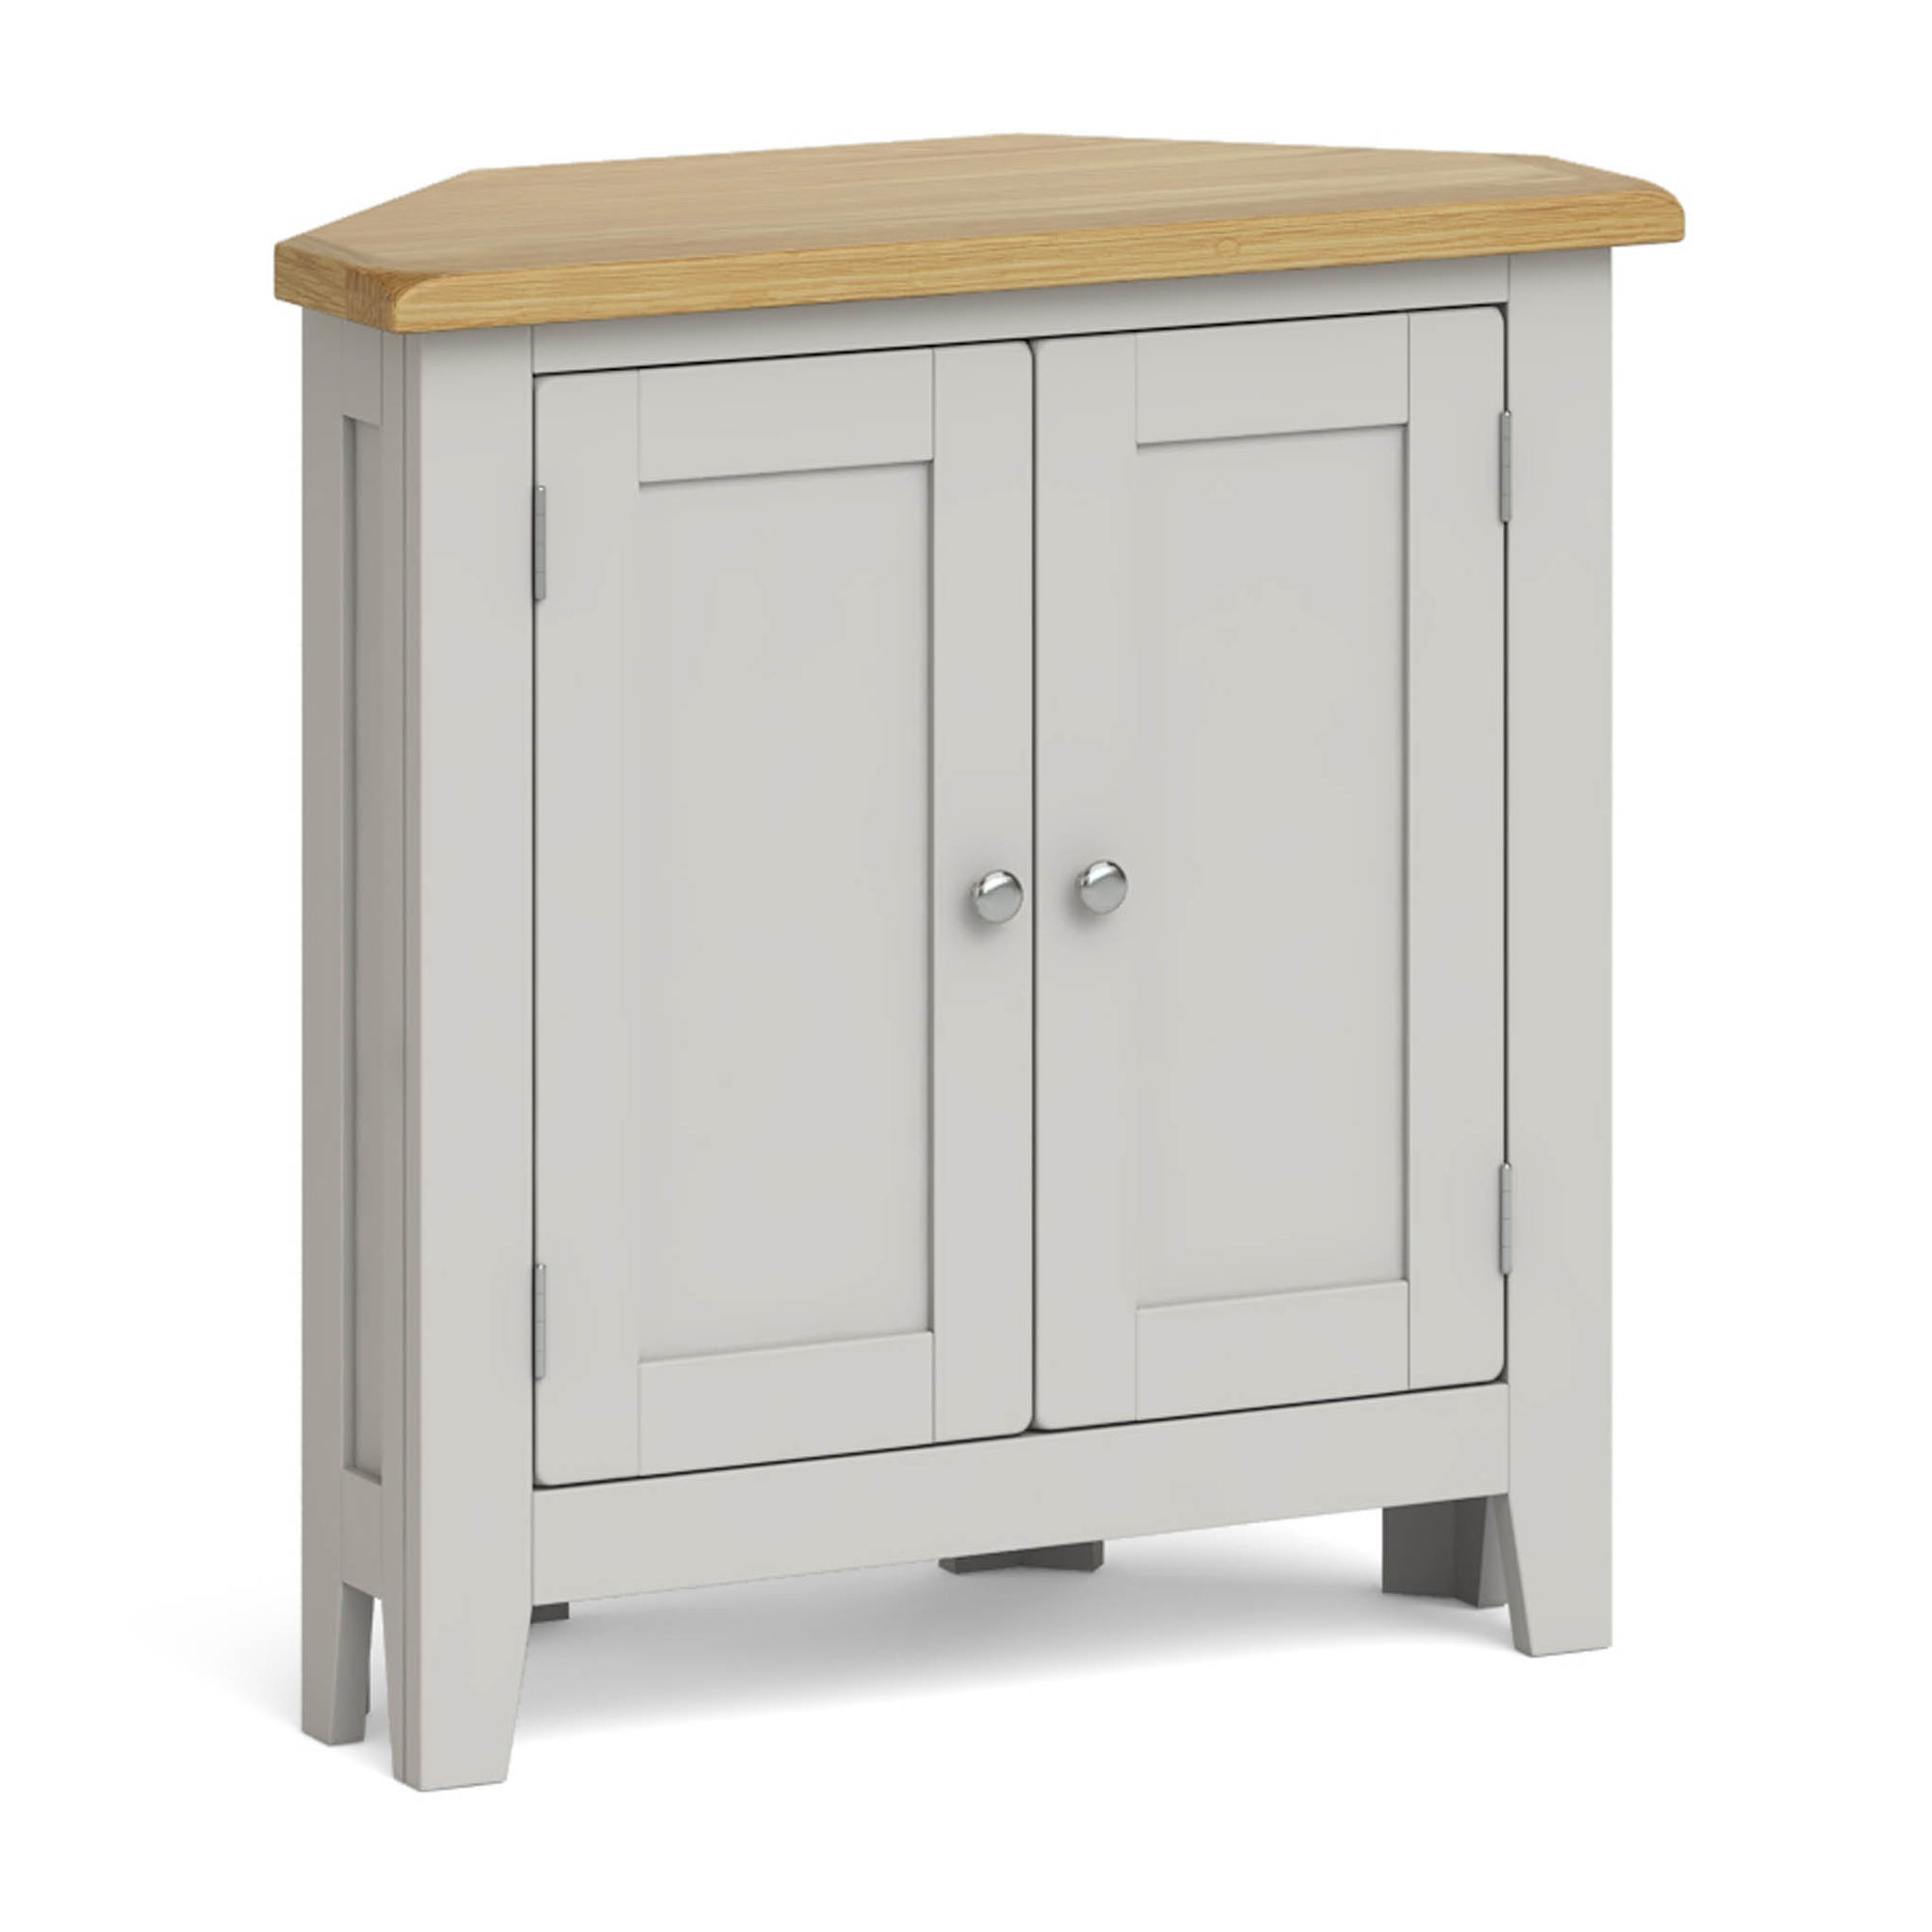 Lundy Grey Small Corner Cabinet by Roseland Furniture